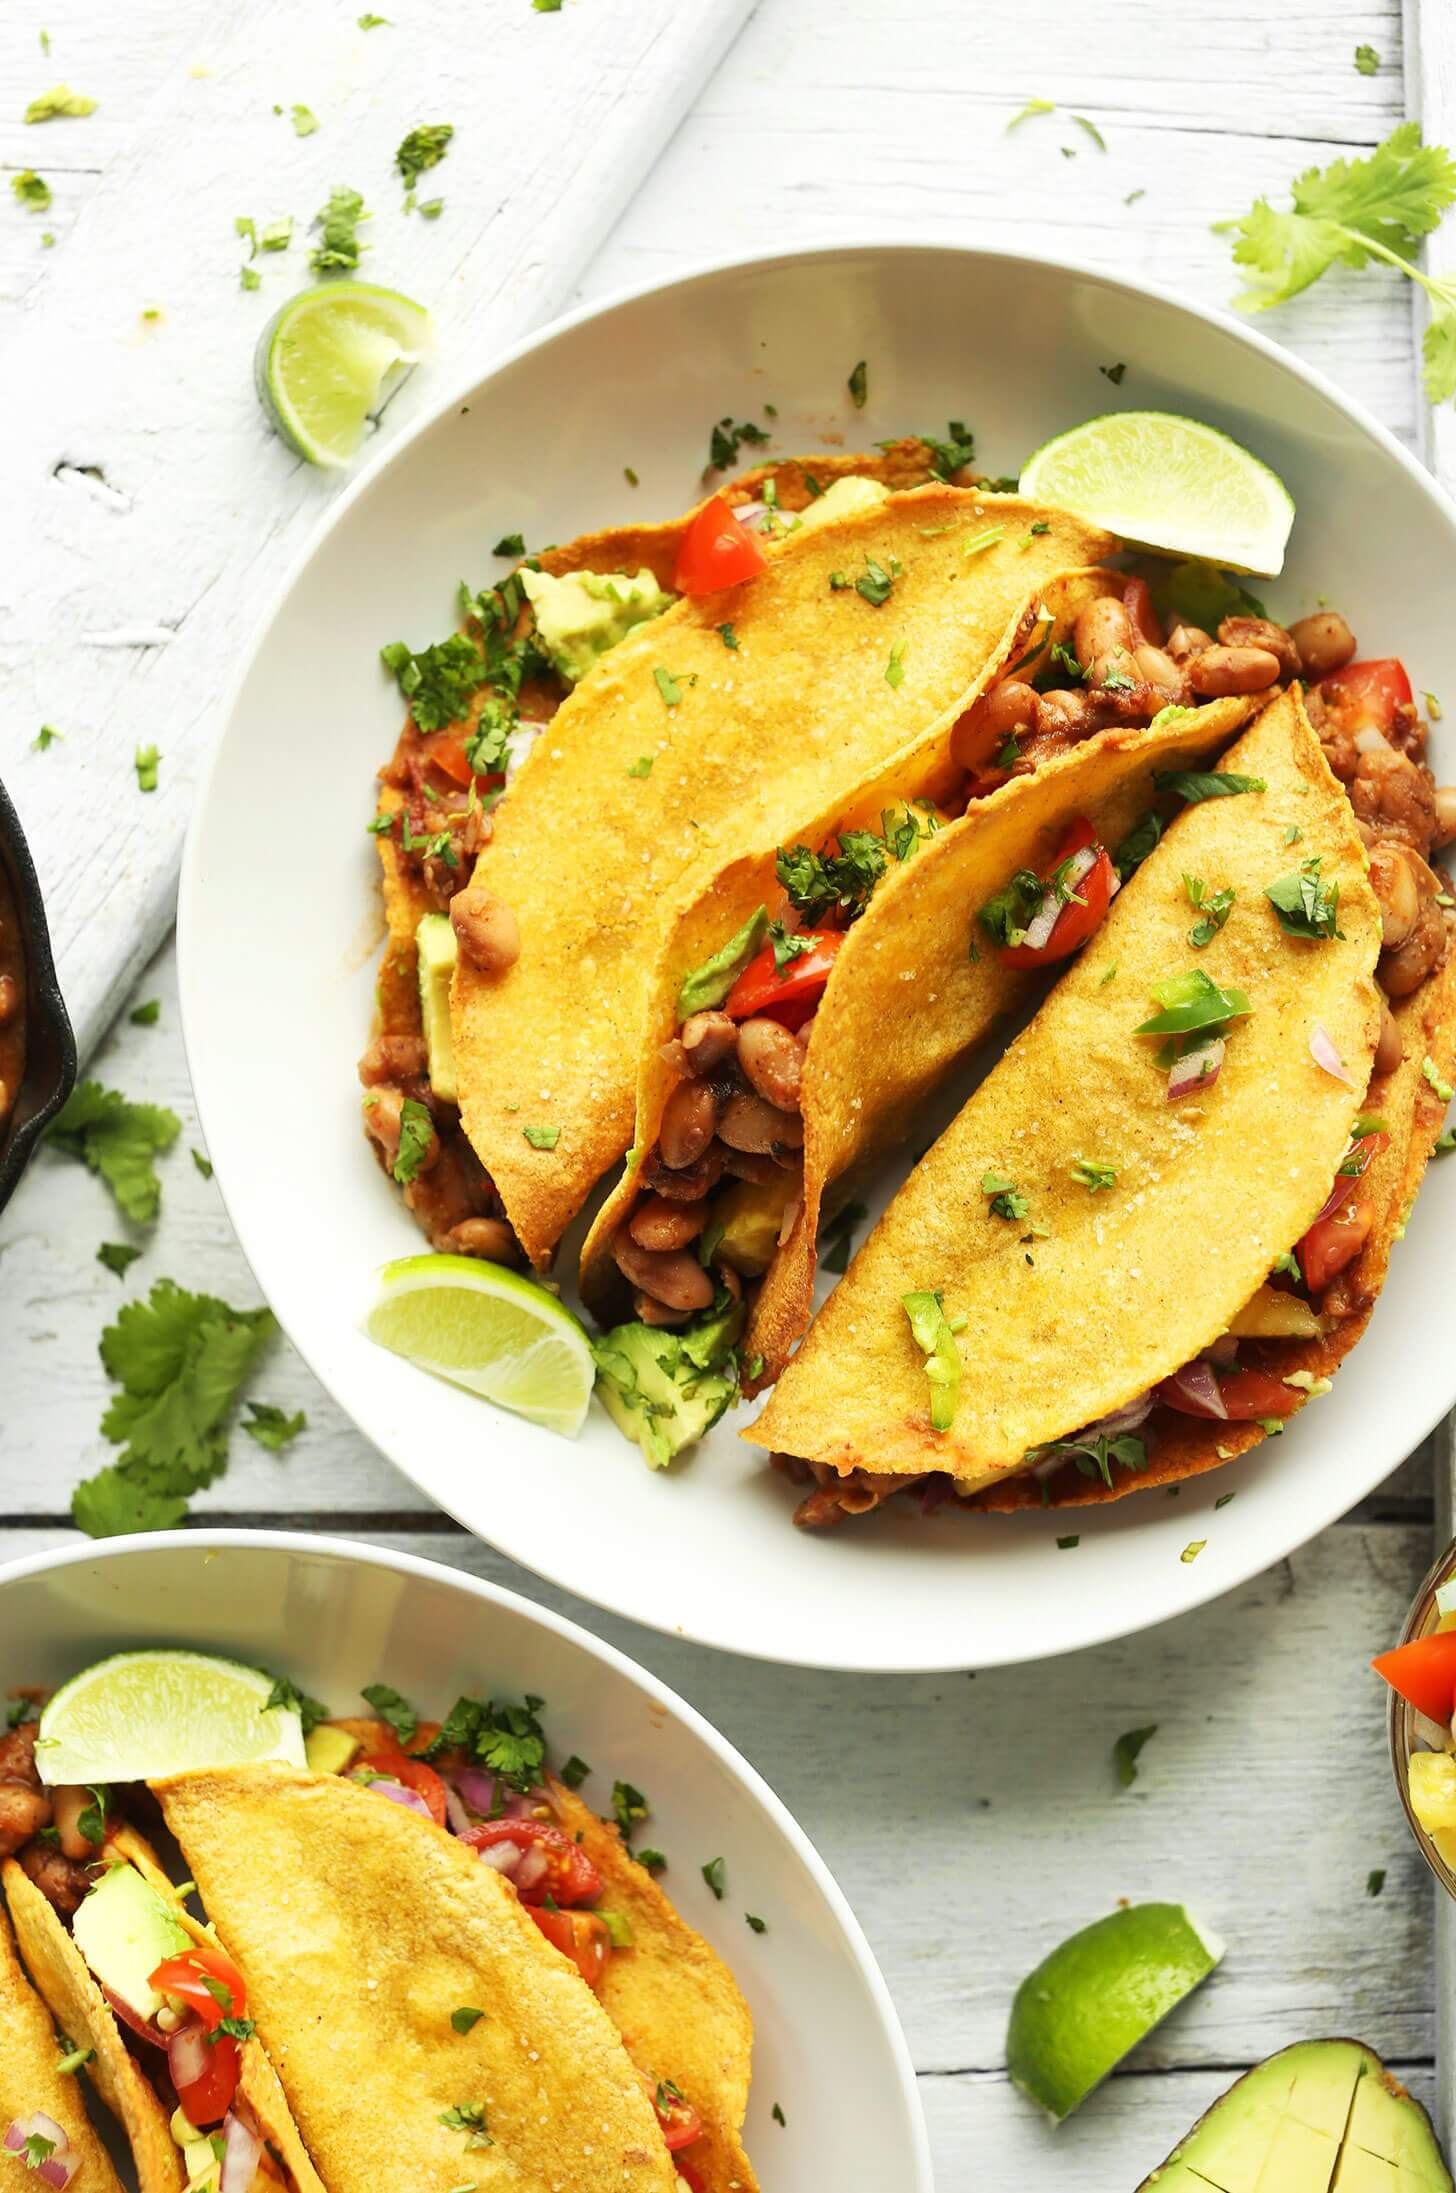 Crispy Baked Tacos with Pineapple Salsa